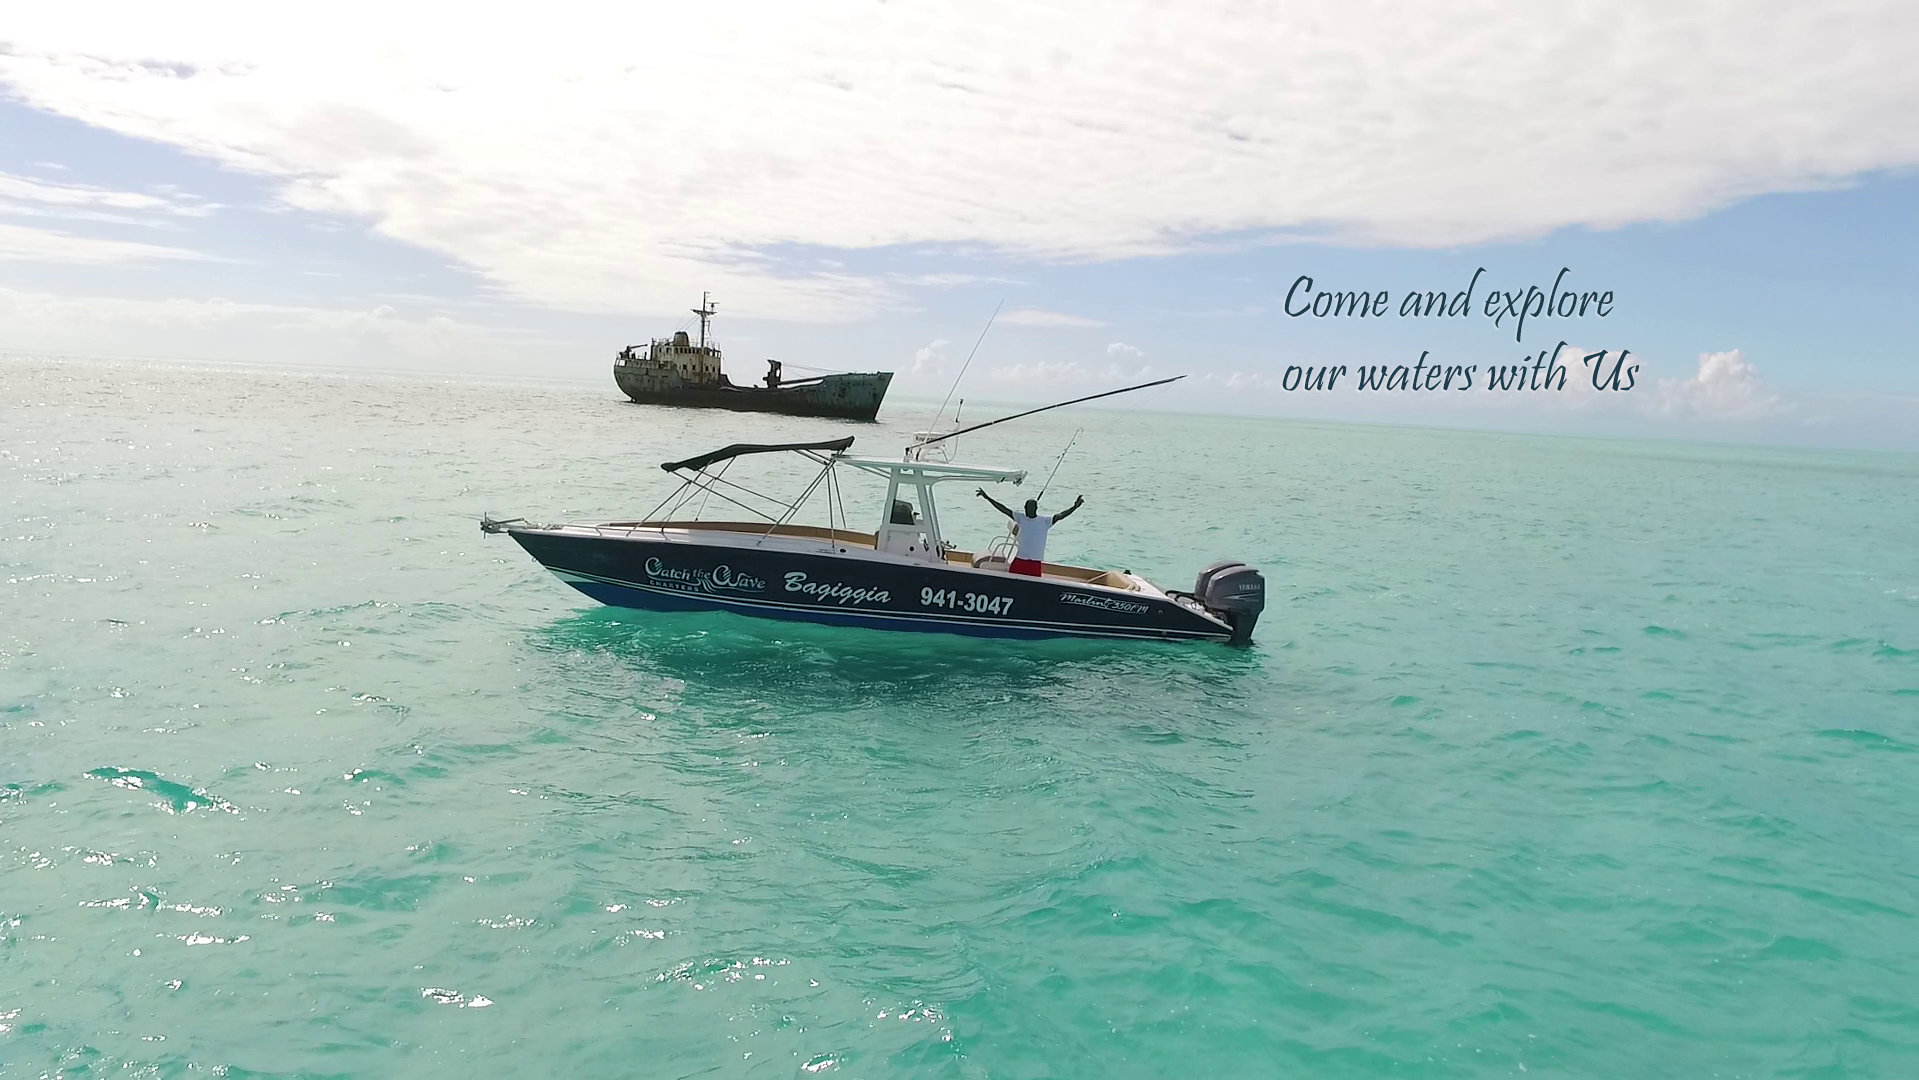 Catch the Wave Charters - Fishing Charters and Boat Tours in Turks and Caicos Islands